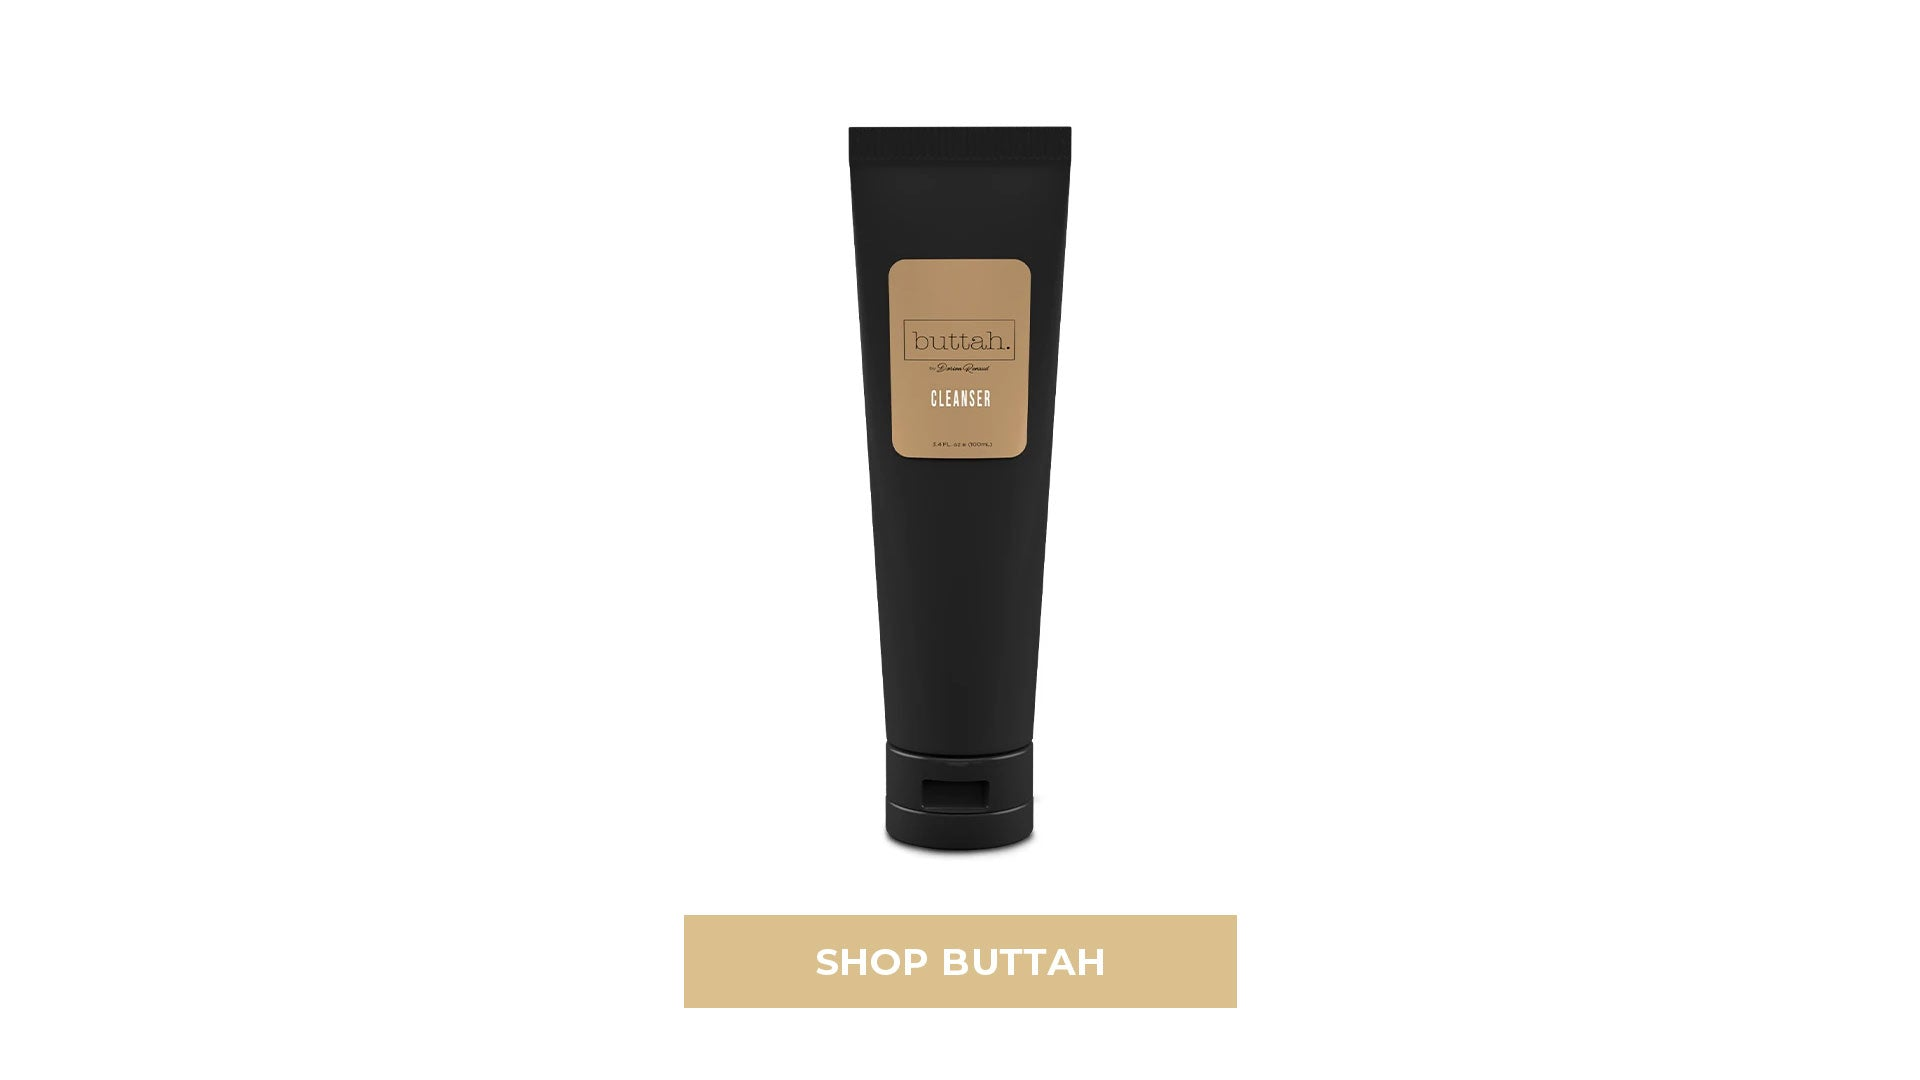 Shop-Buttah-Cleanser